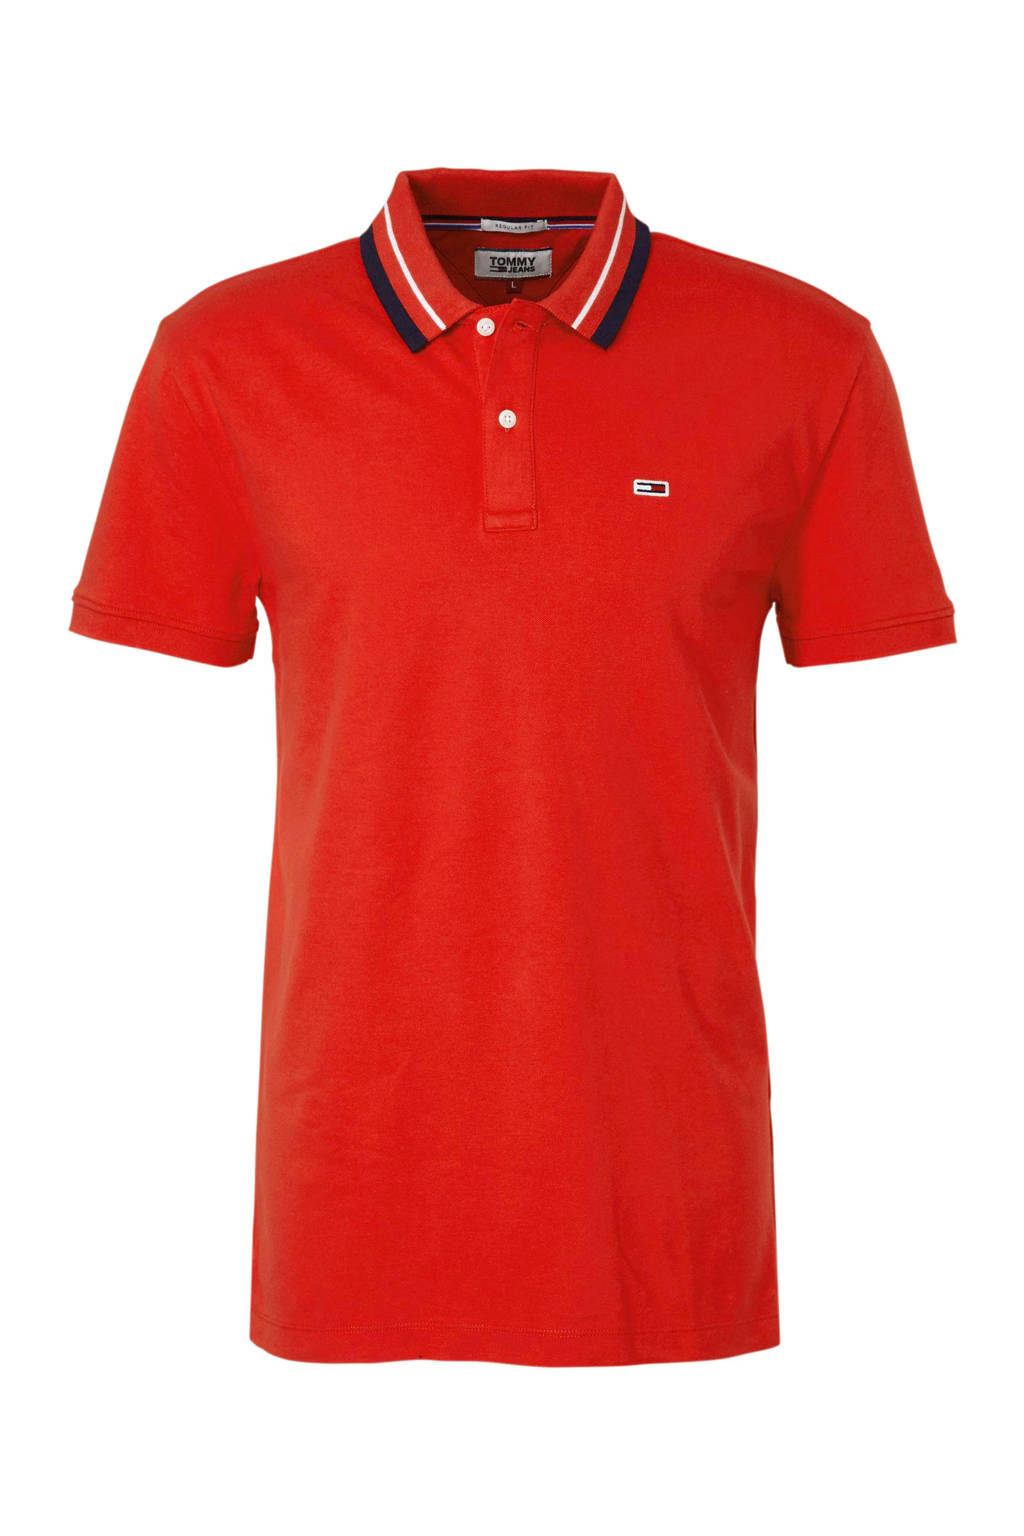 Tommy Jeans regular fit polo, Rood/blauw/wit